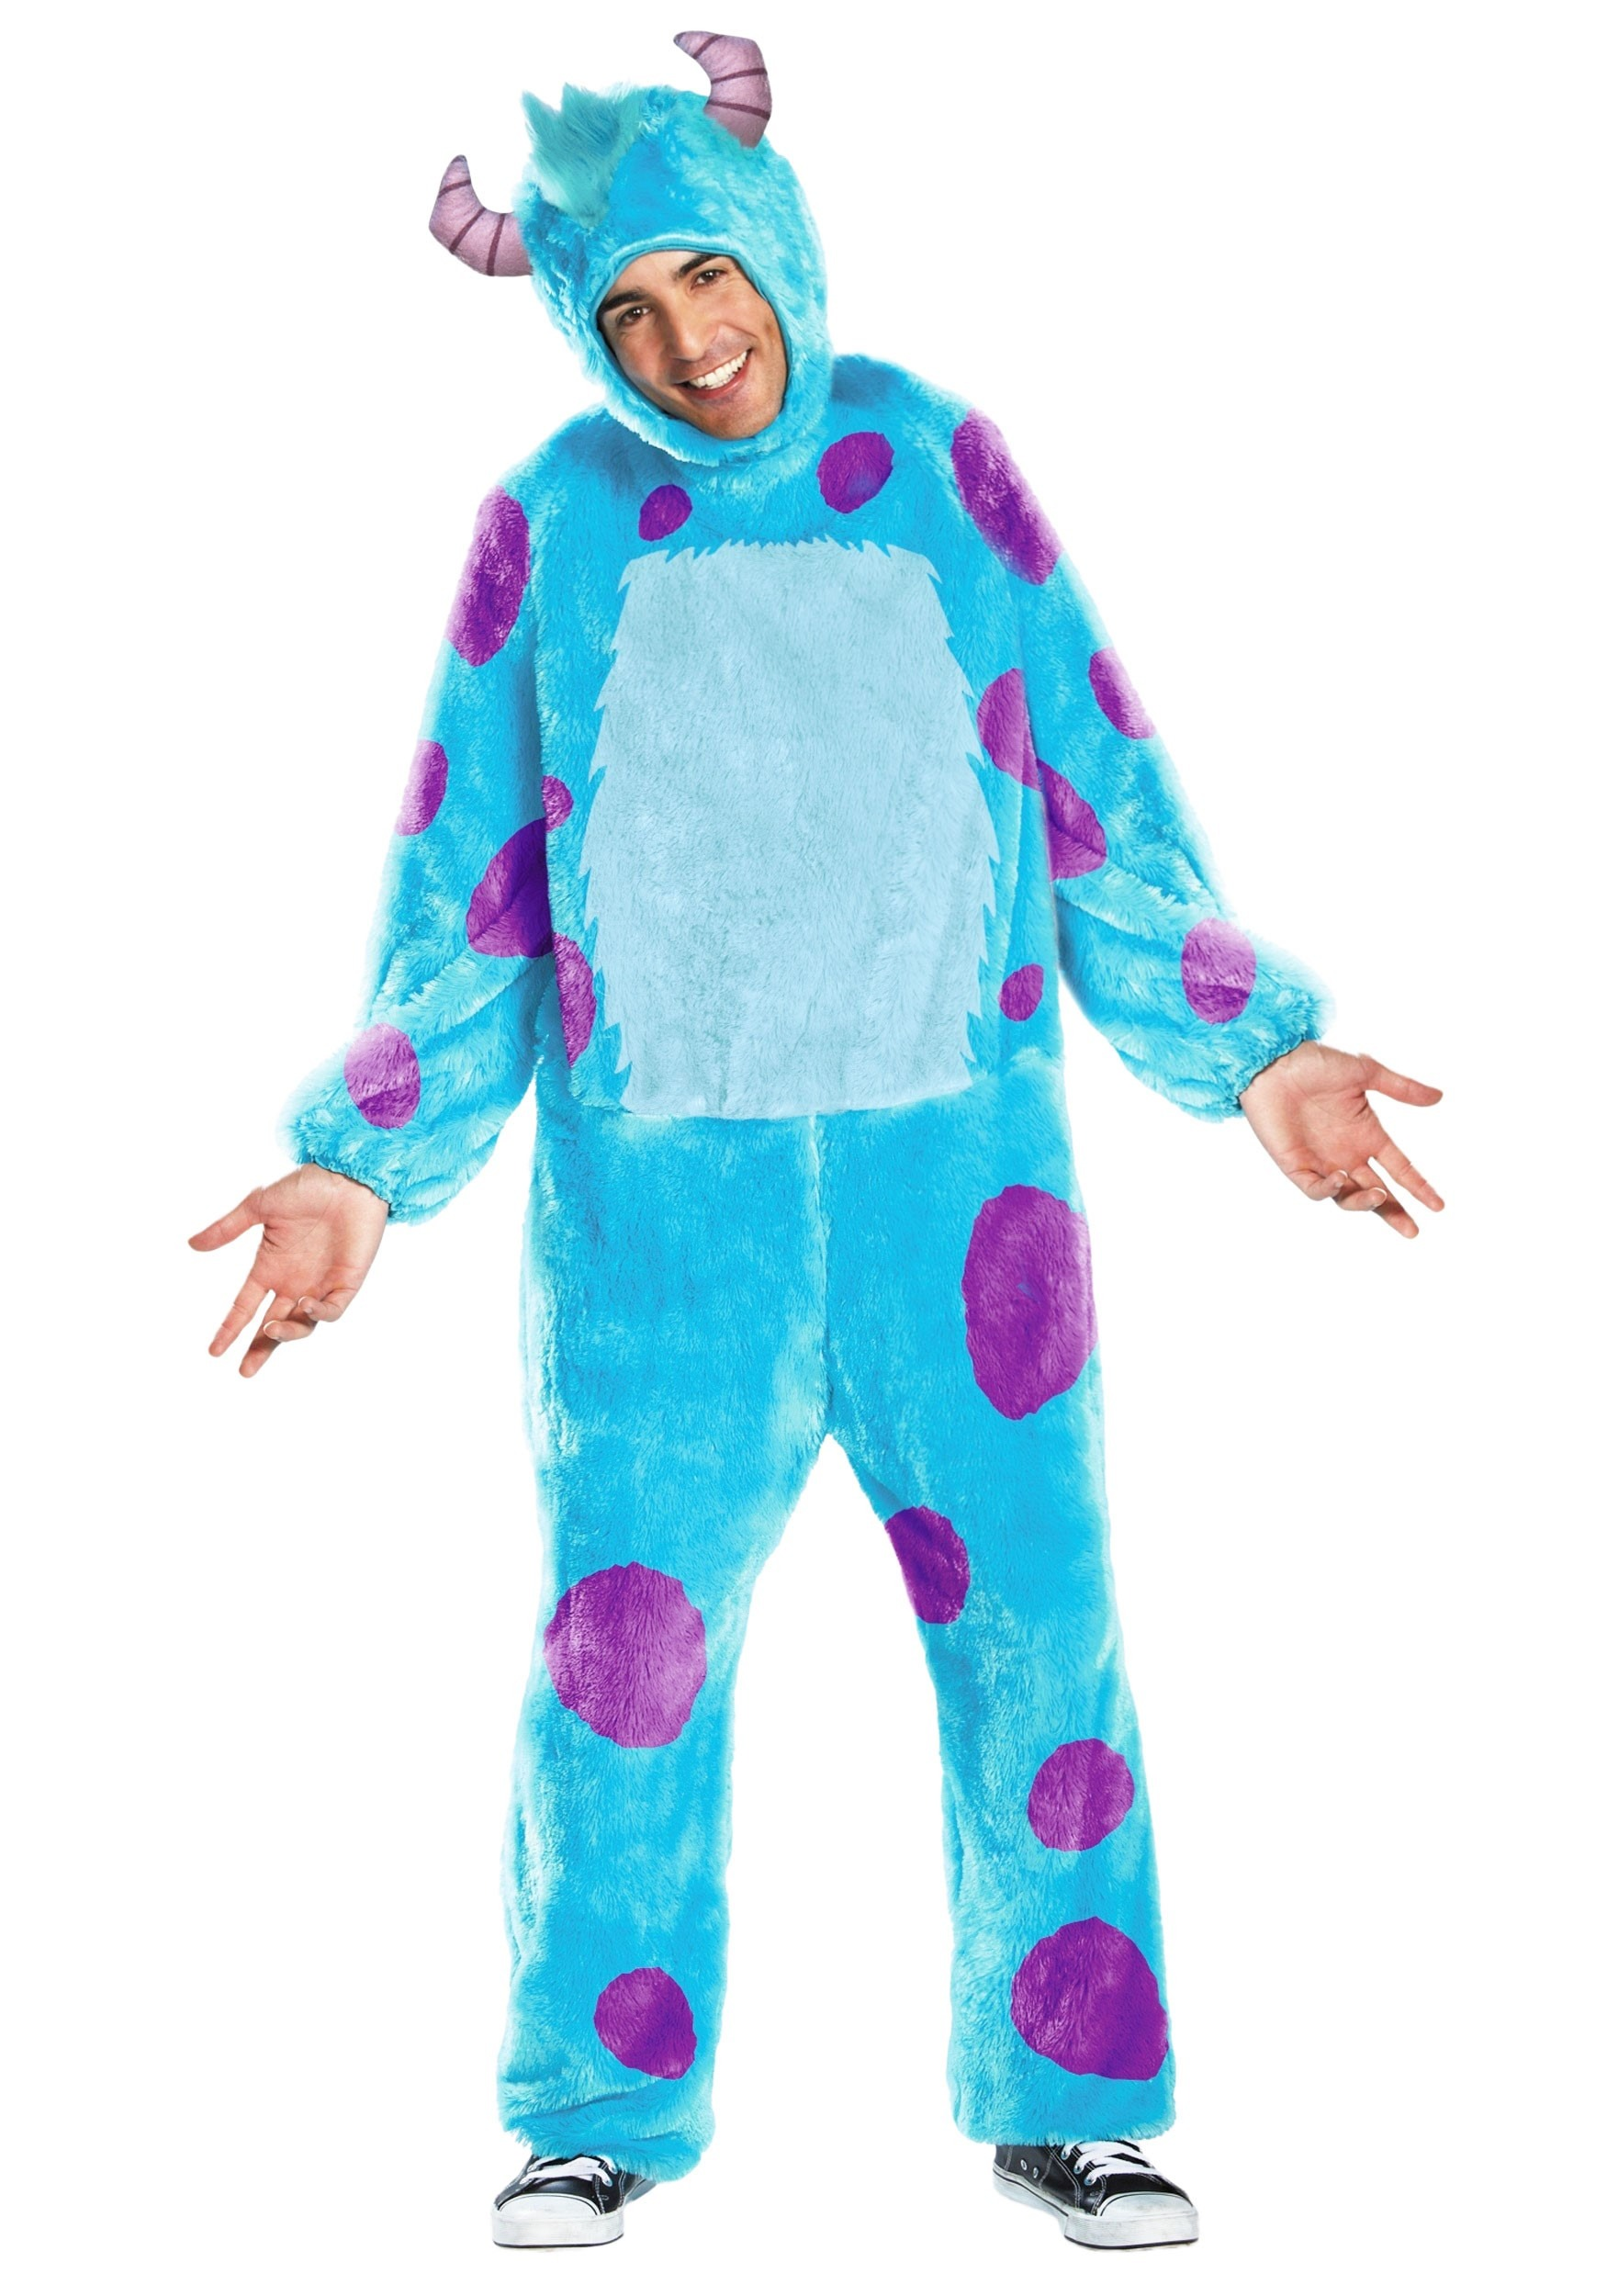 Monsters, Inc Sulley Costume